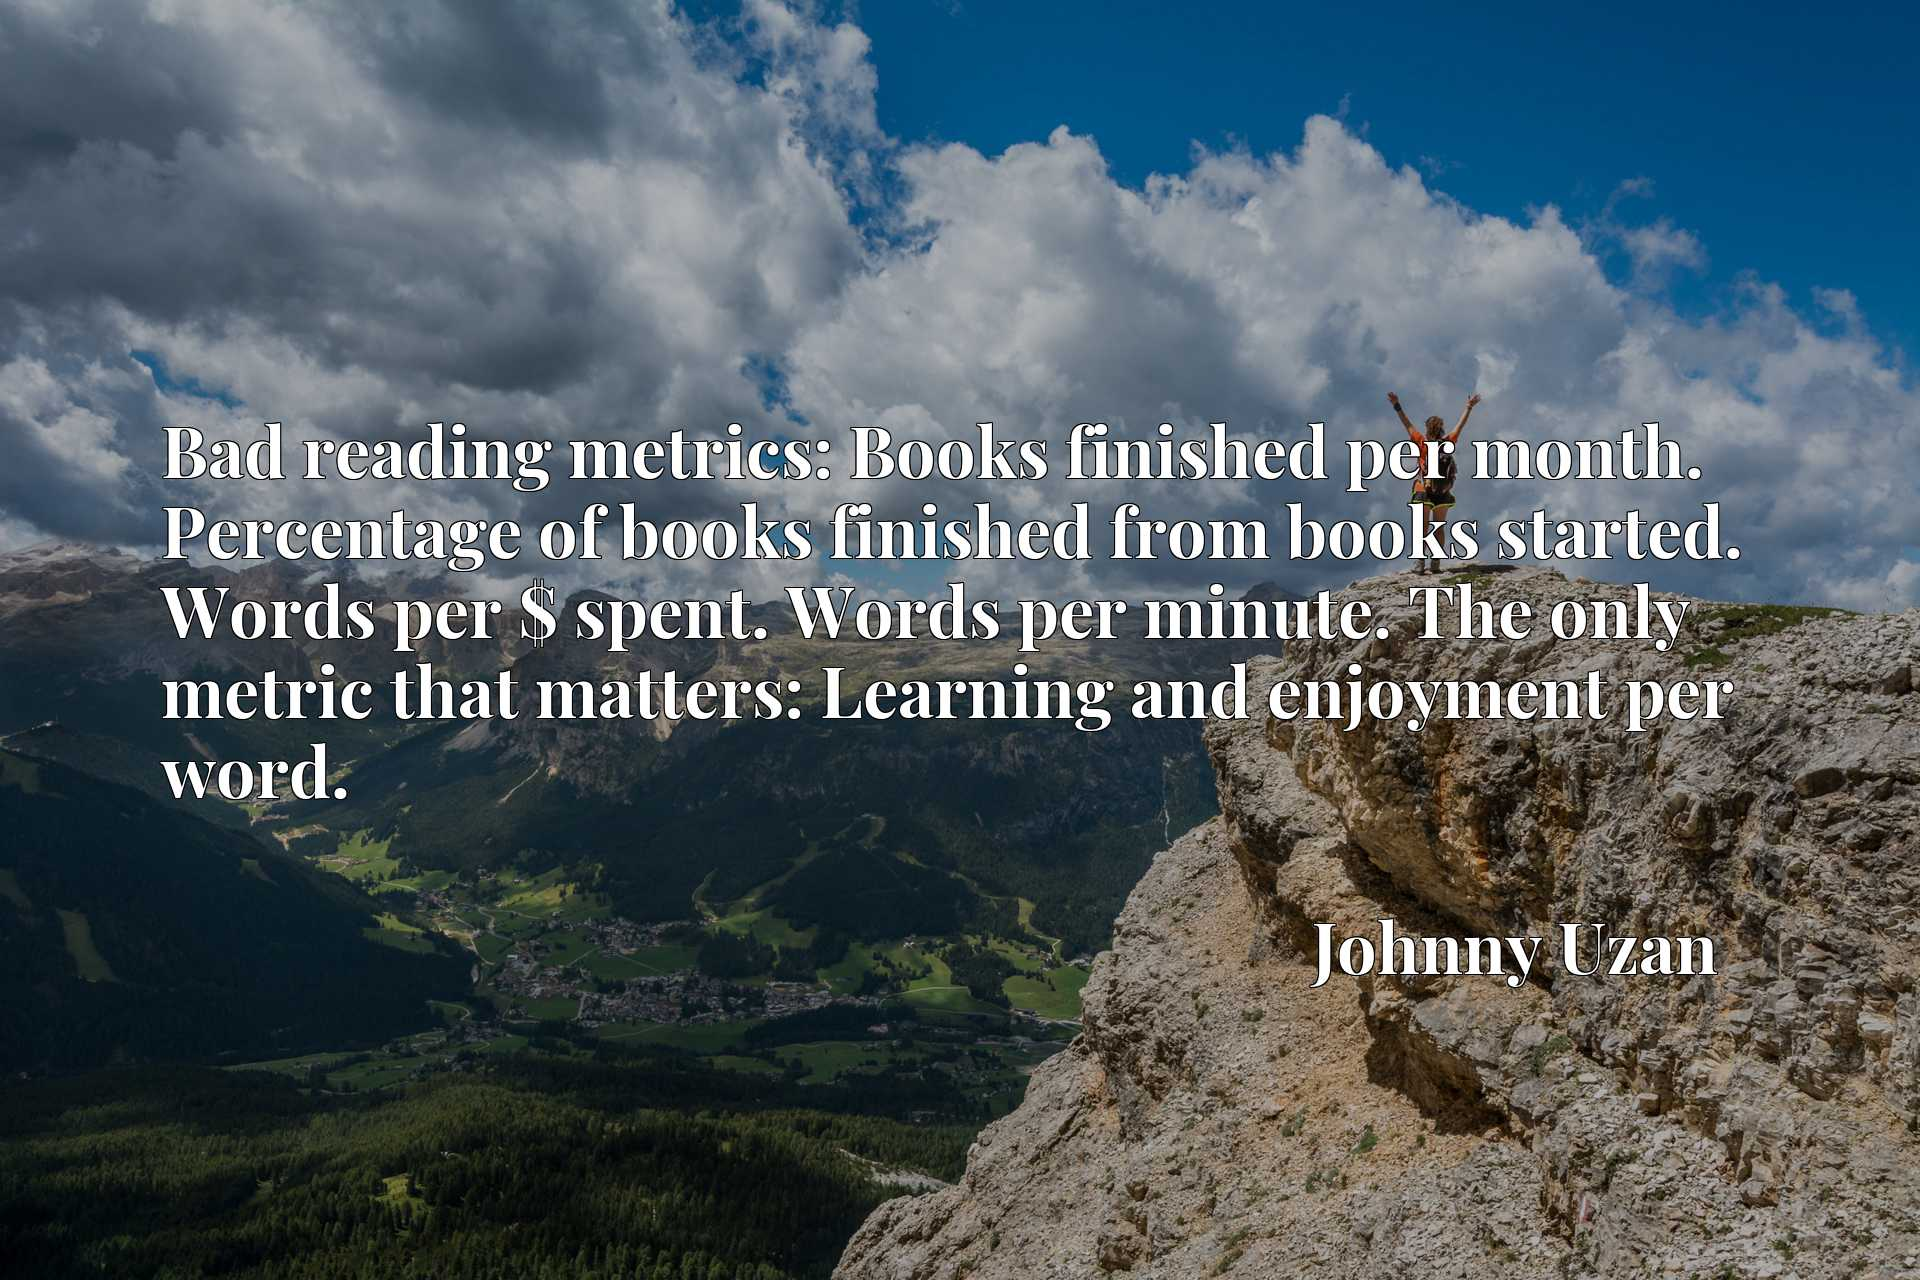 Bad reading metrics: Books finished per month. Percentage of books finished from books started. Words per $ spent. Words per minute. The only metric that matters: Learning and enjoyment per word.